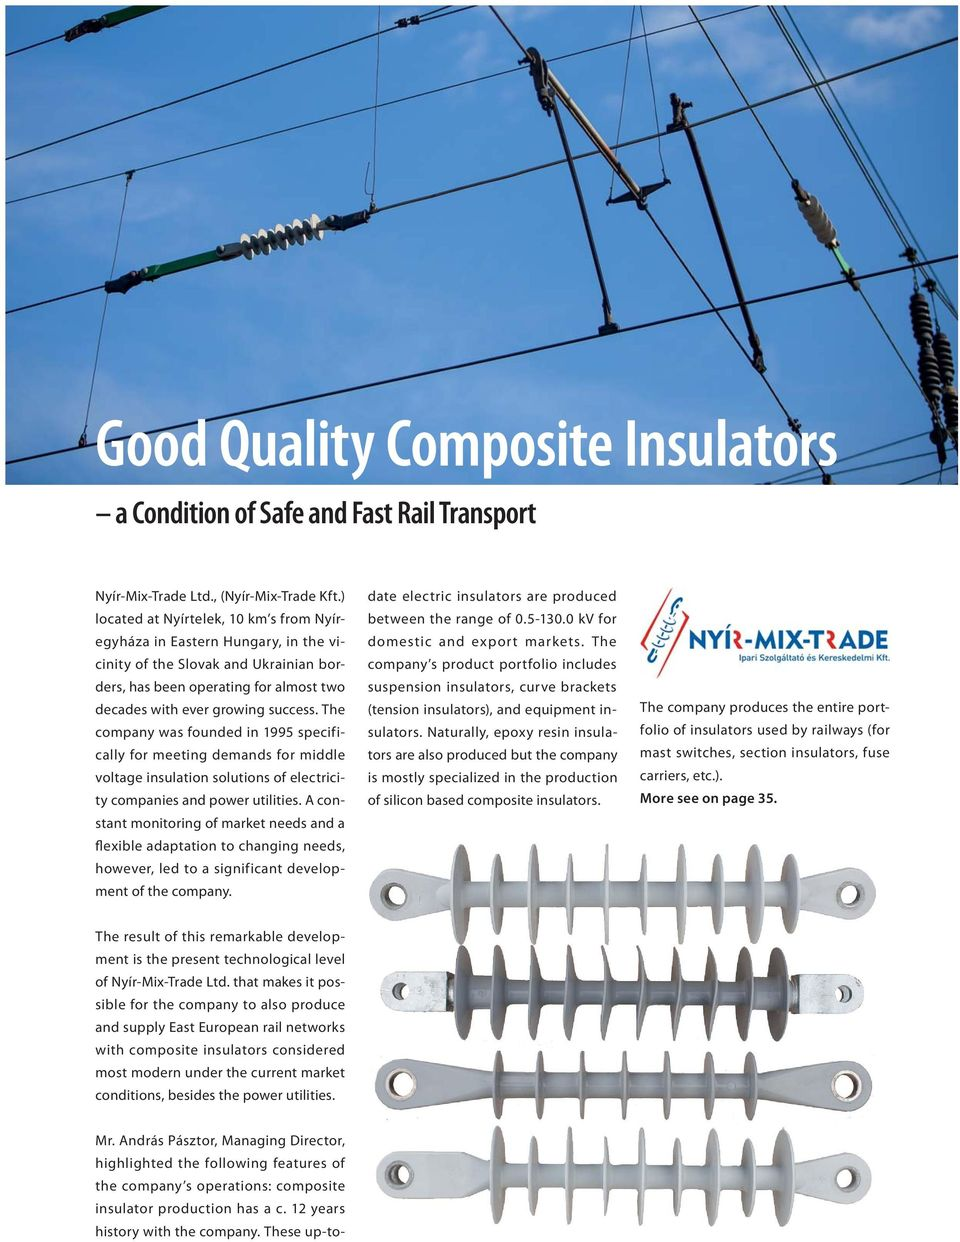 The company was founded in 1995 specifically for meeting demands for middle voltage insulation solutions of electricity companies and power utilities.